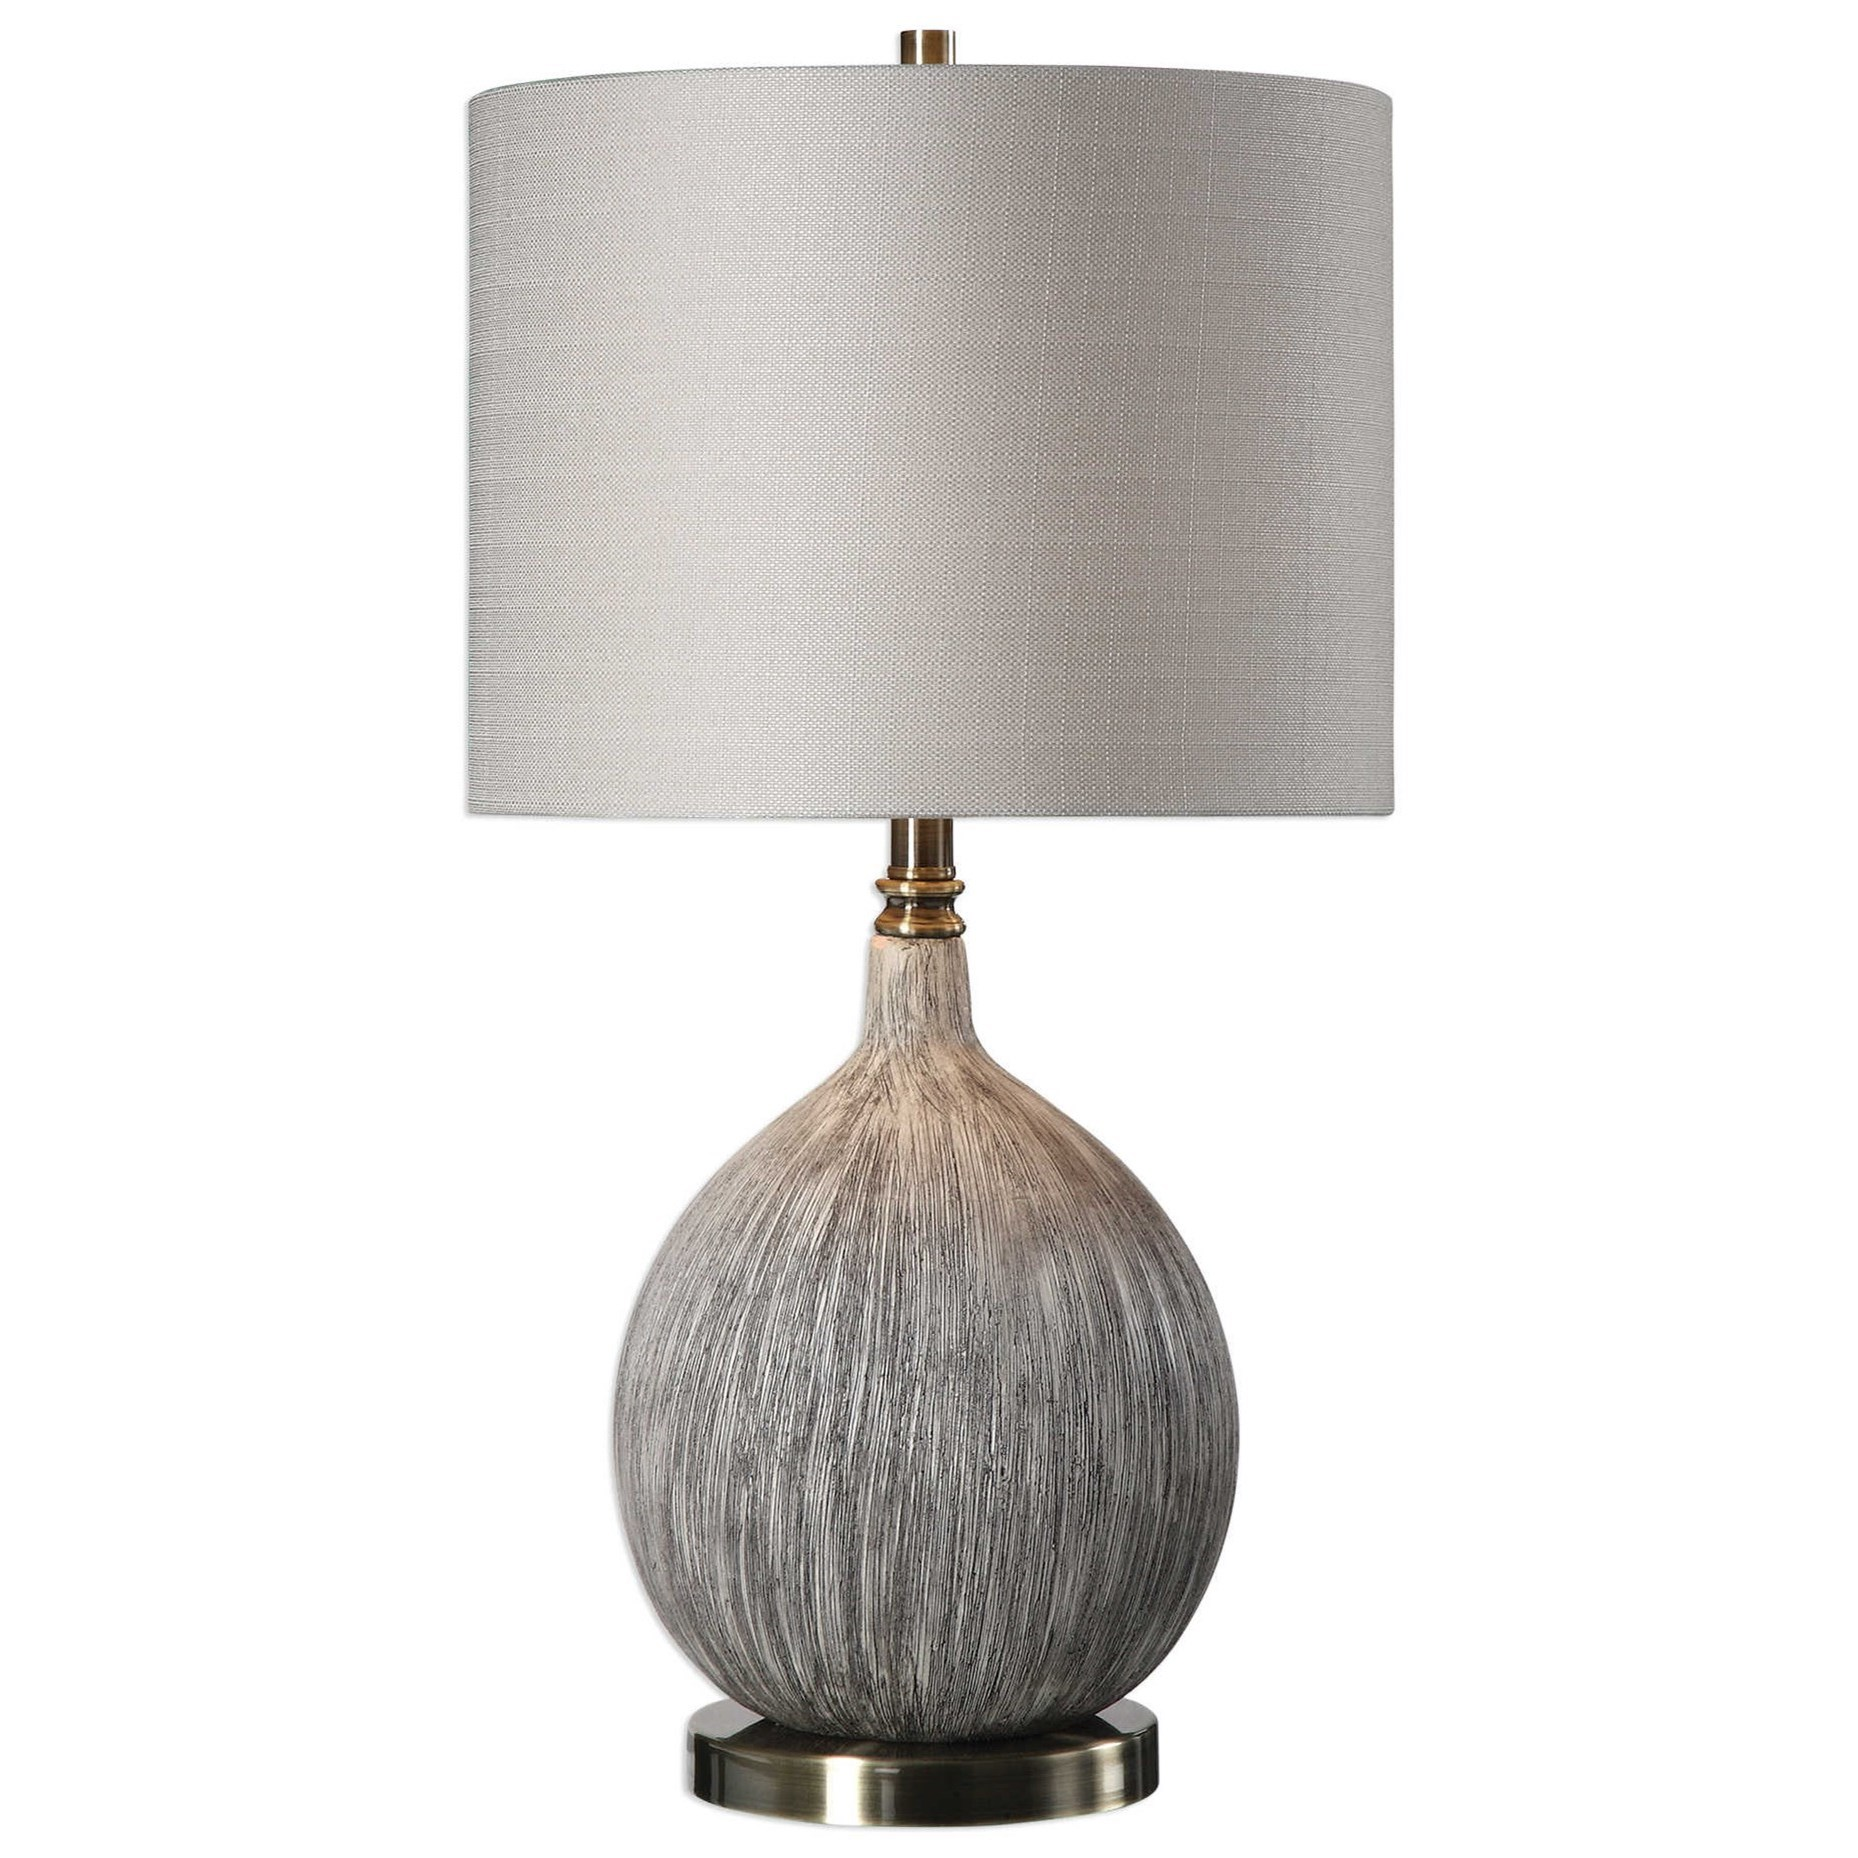 Table Lamps Hedera Textured Ivory Table Lamp by Uttermost at Miller Waldrop Furniture and Decor